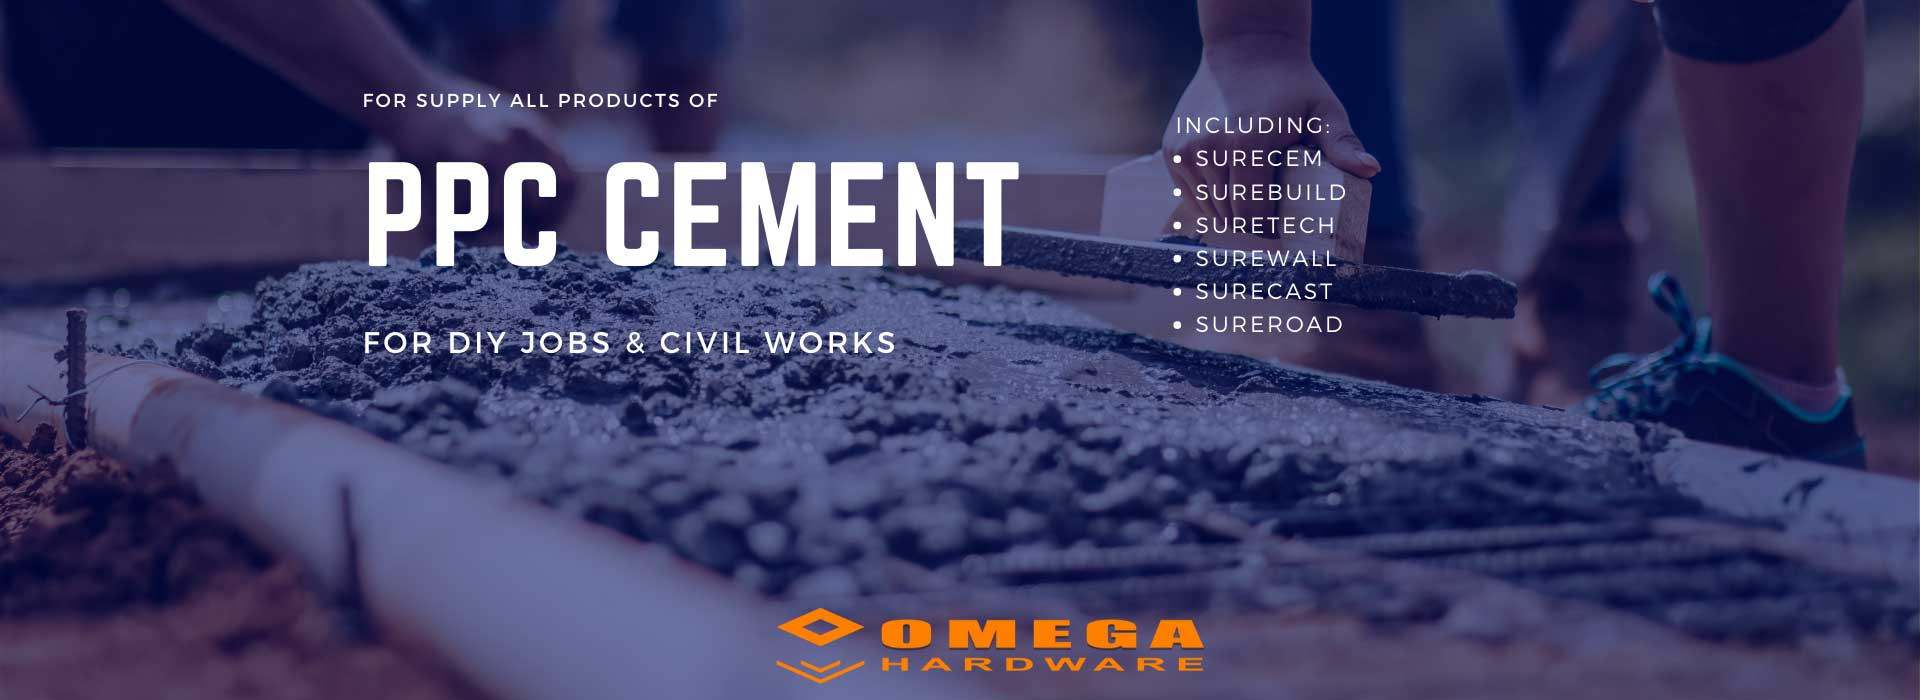 PPC cement supplier, local cement supplier, cement for building sites, cement for road building, Omega Gansbaai, Omega Hardware